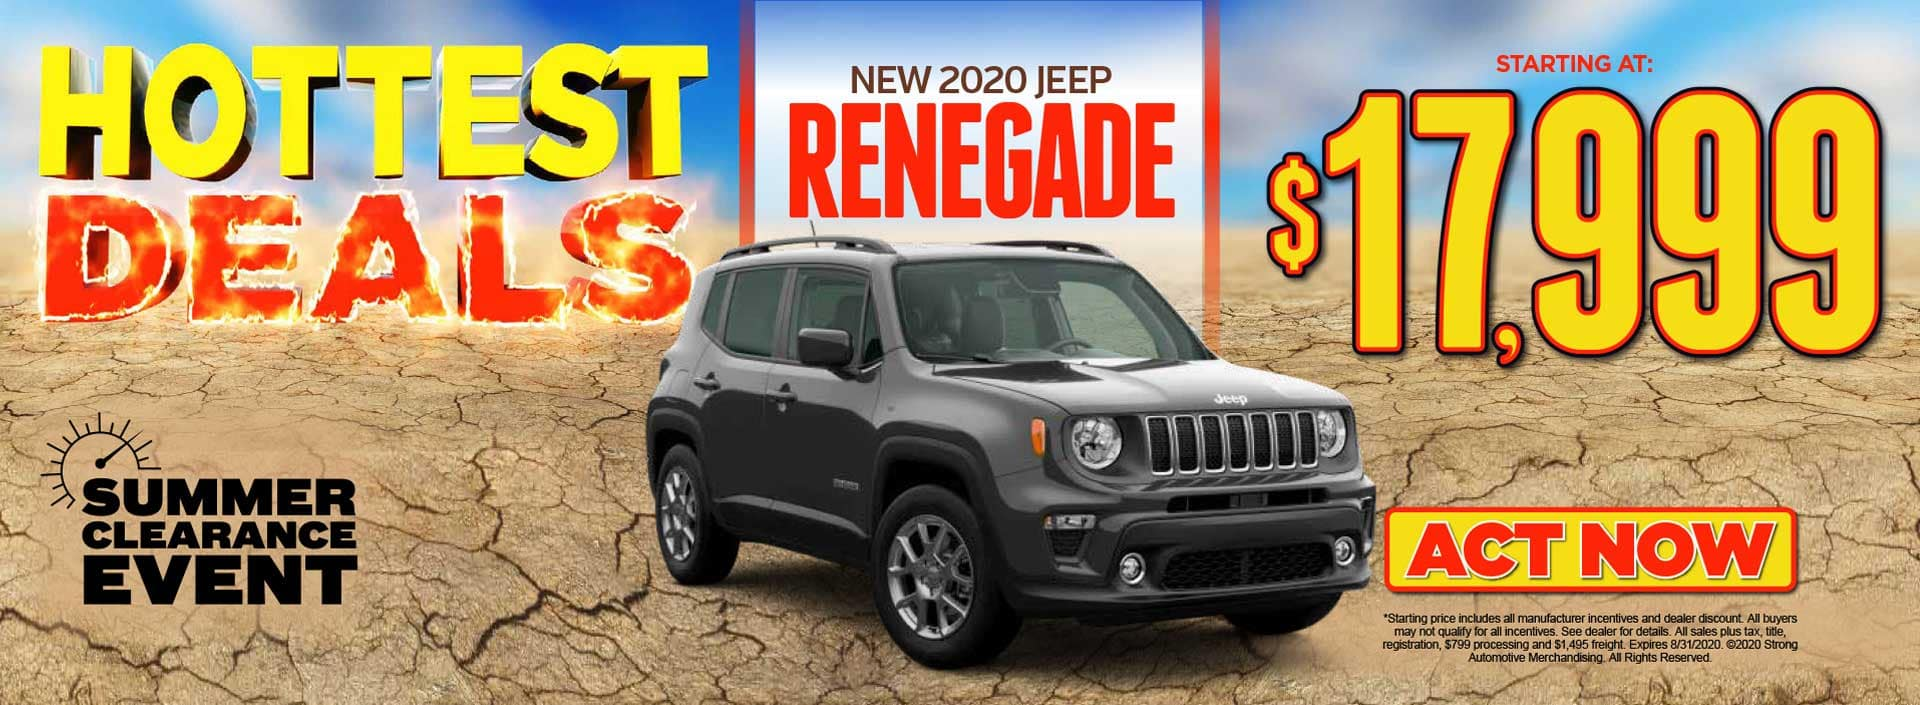 New 2020 Jeep Renegade starting at $17,999 ACT NOW